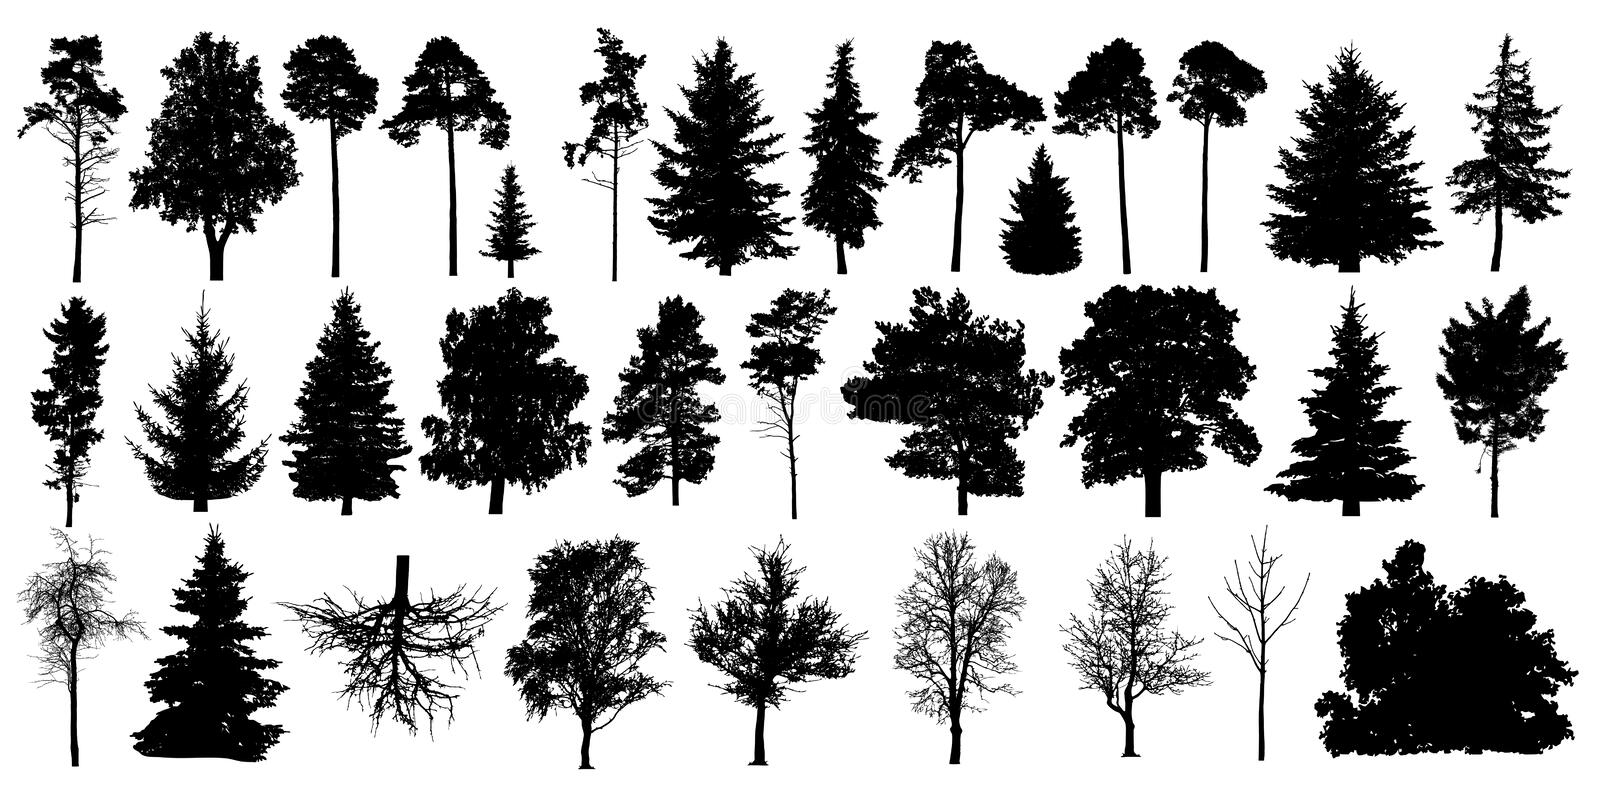 Tree silhouette black vector. Isolated set forest trees on white background.  royalty free illustration